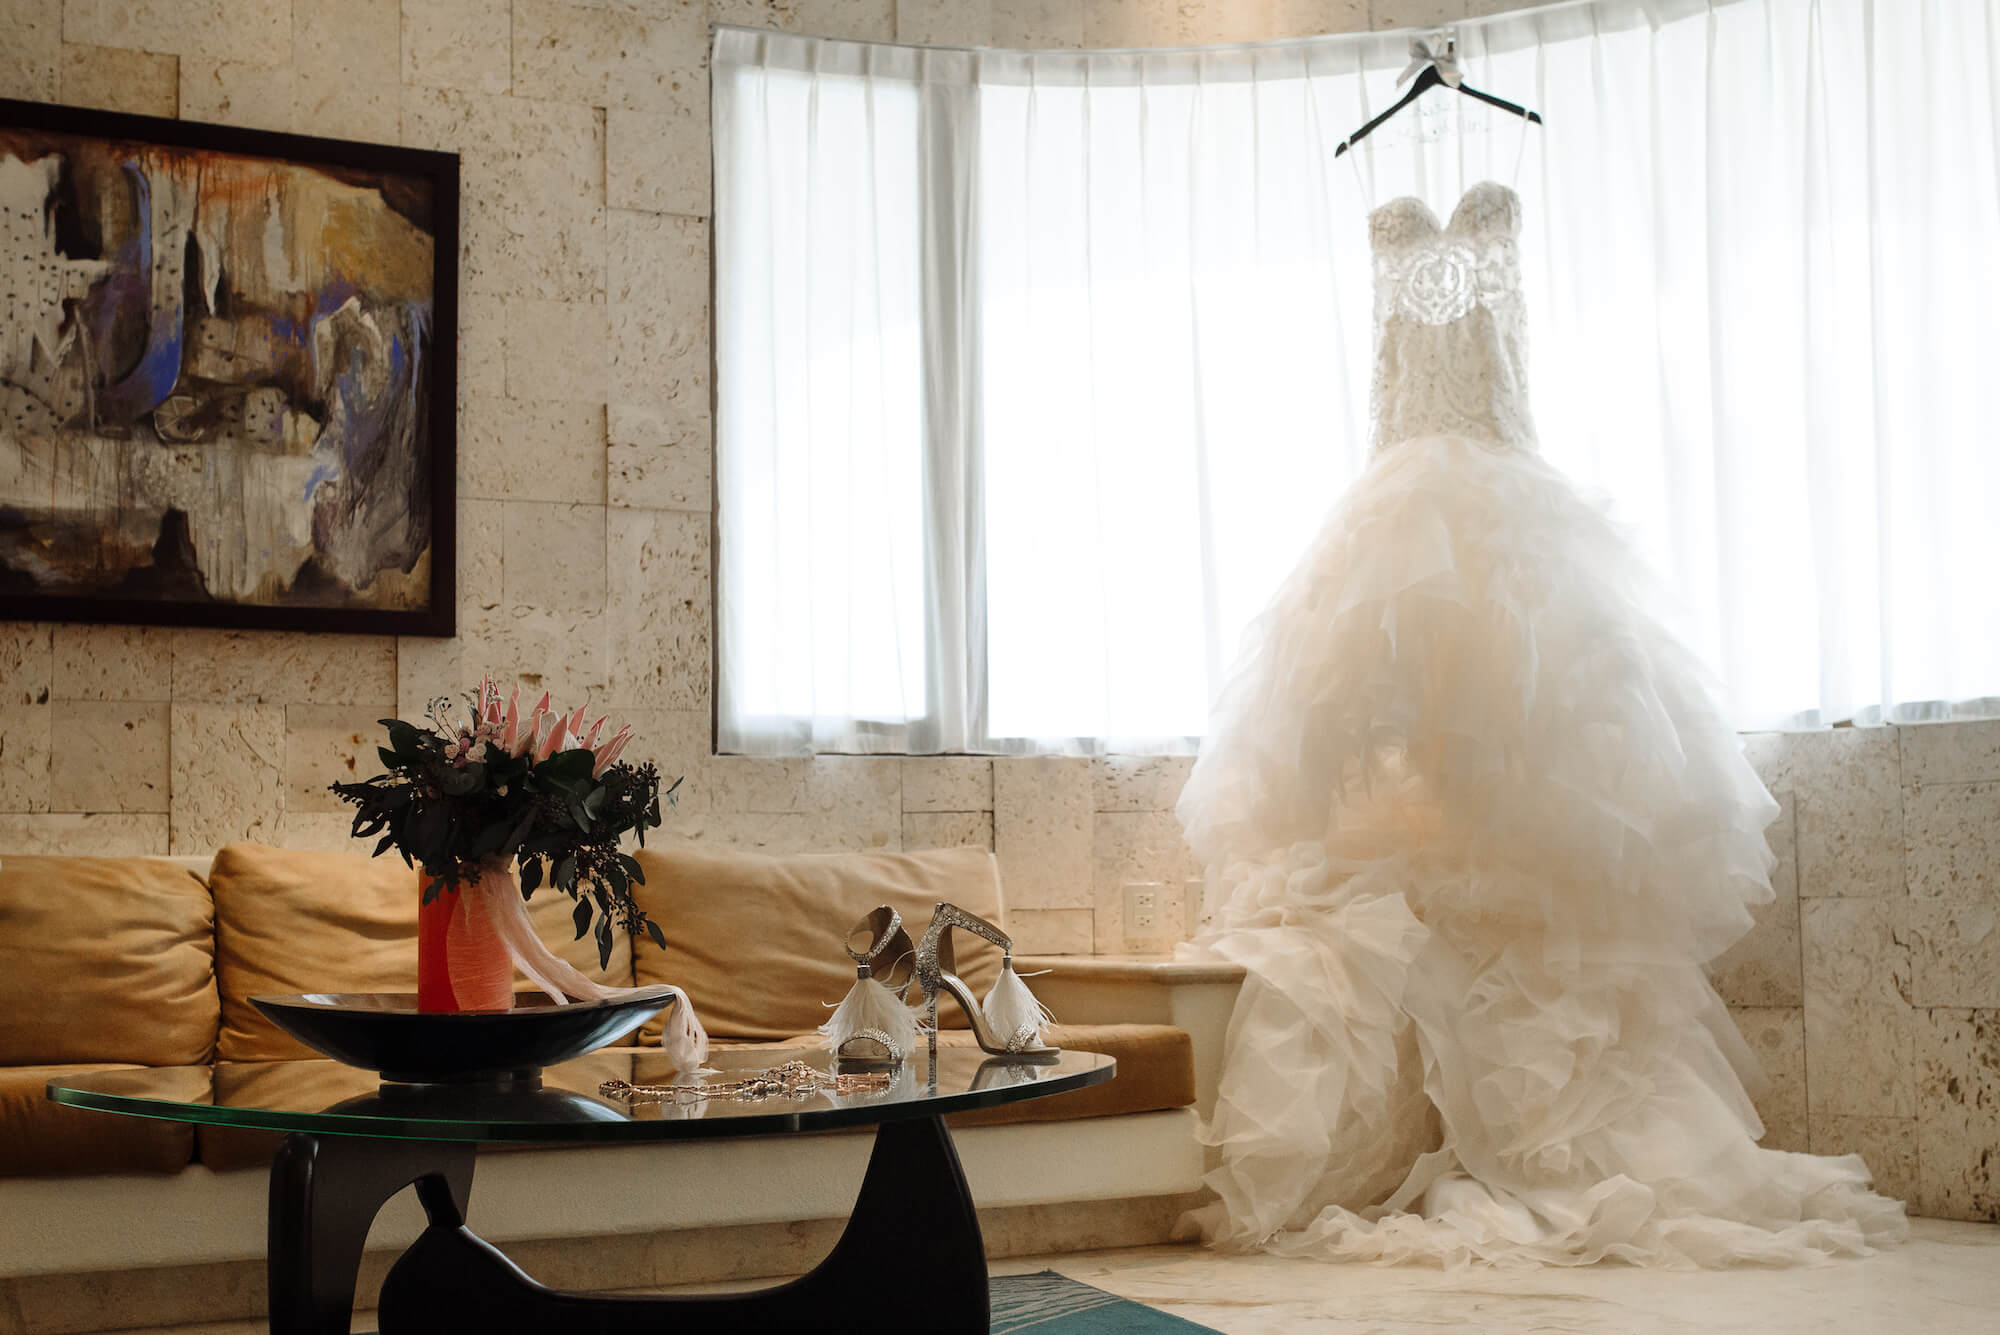 About - With over 25 years in the business, your wedding dress is in the best hands in the 'Burgh!